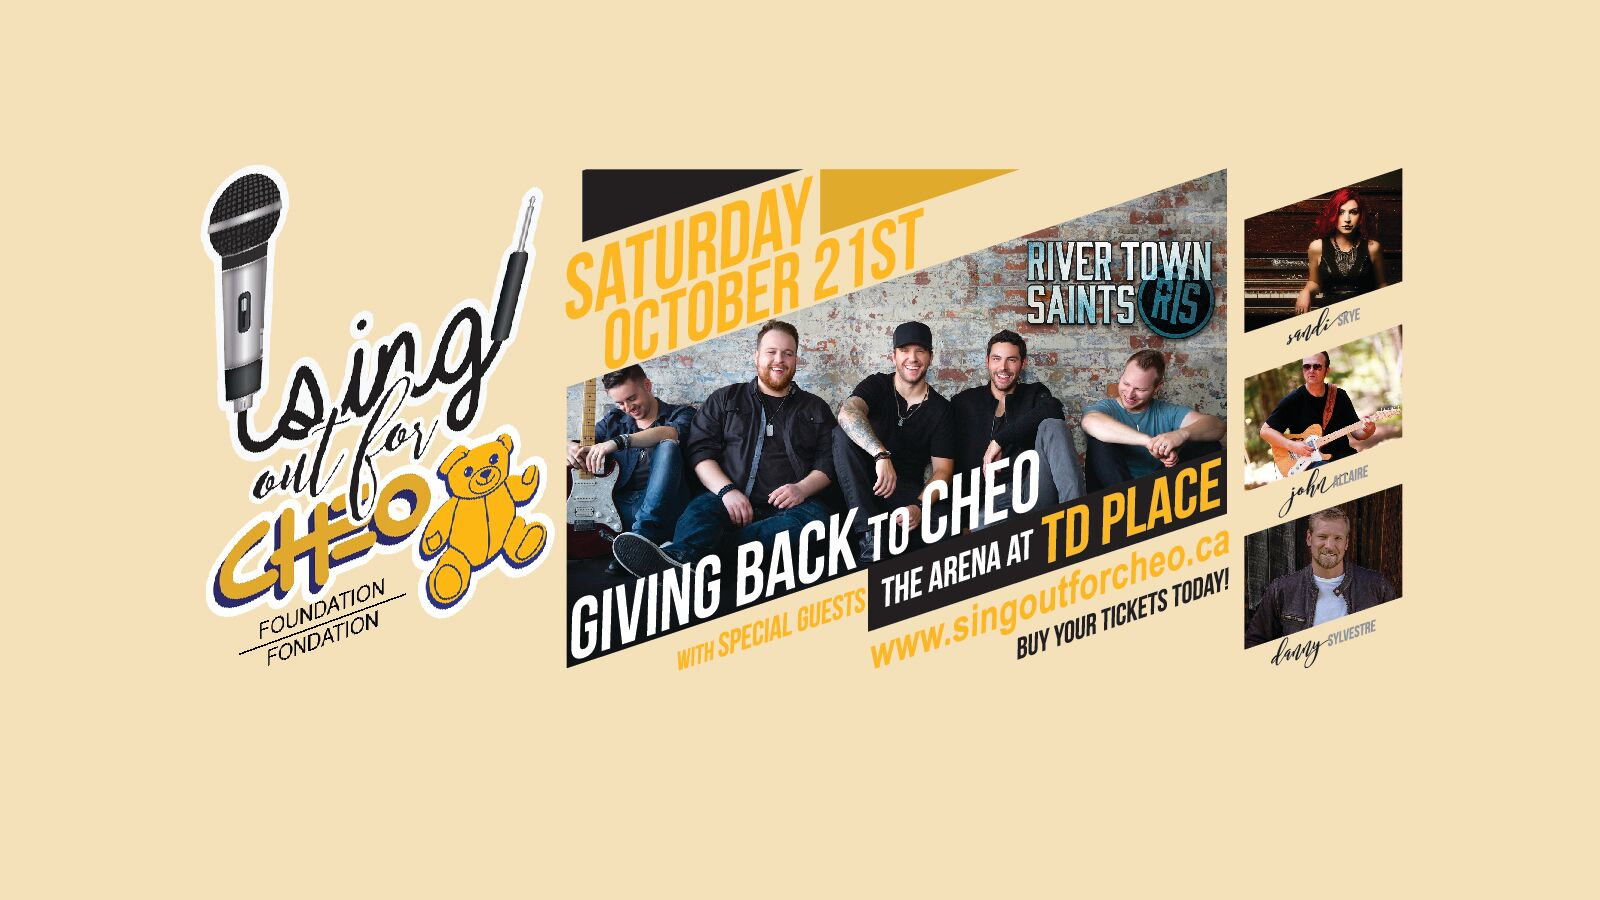 Sing Out for CHEO